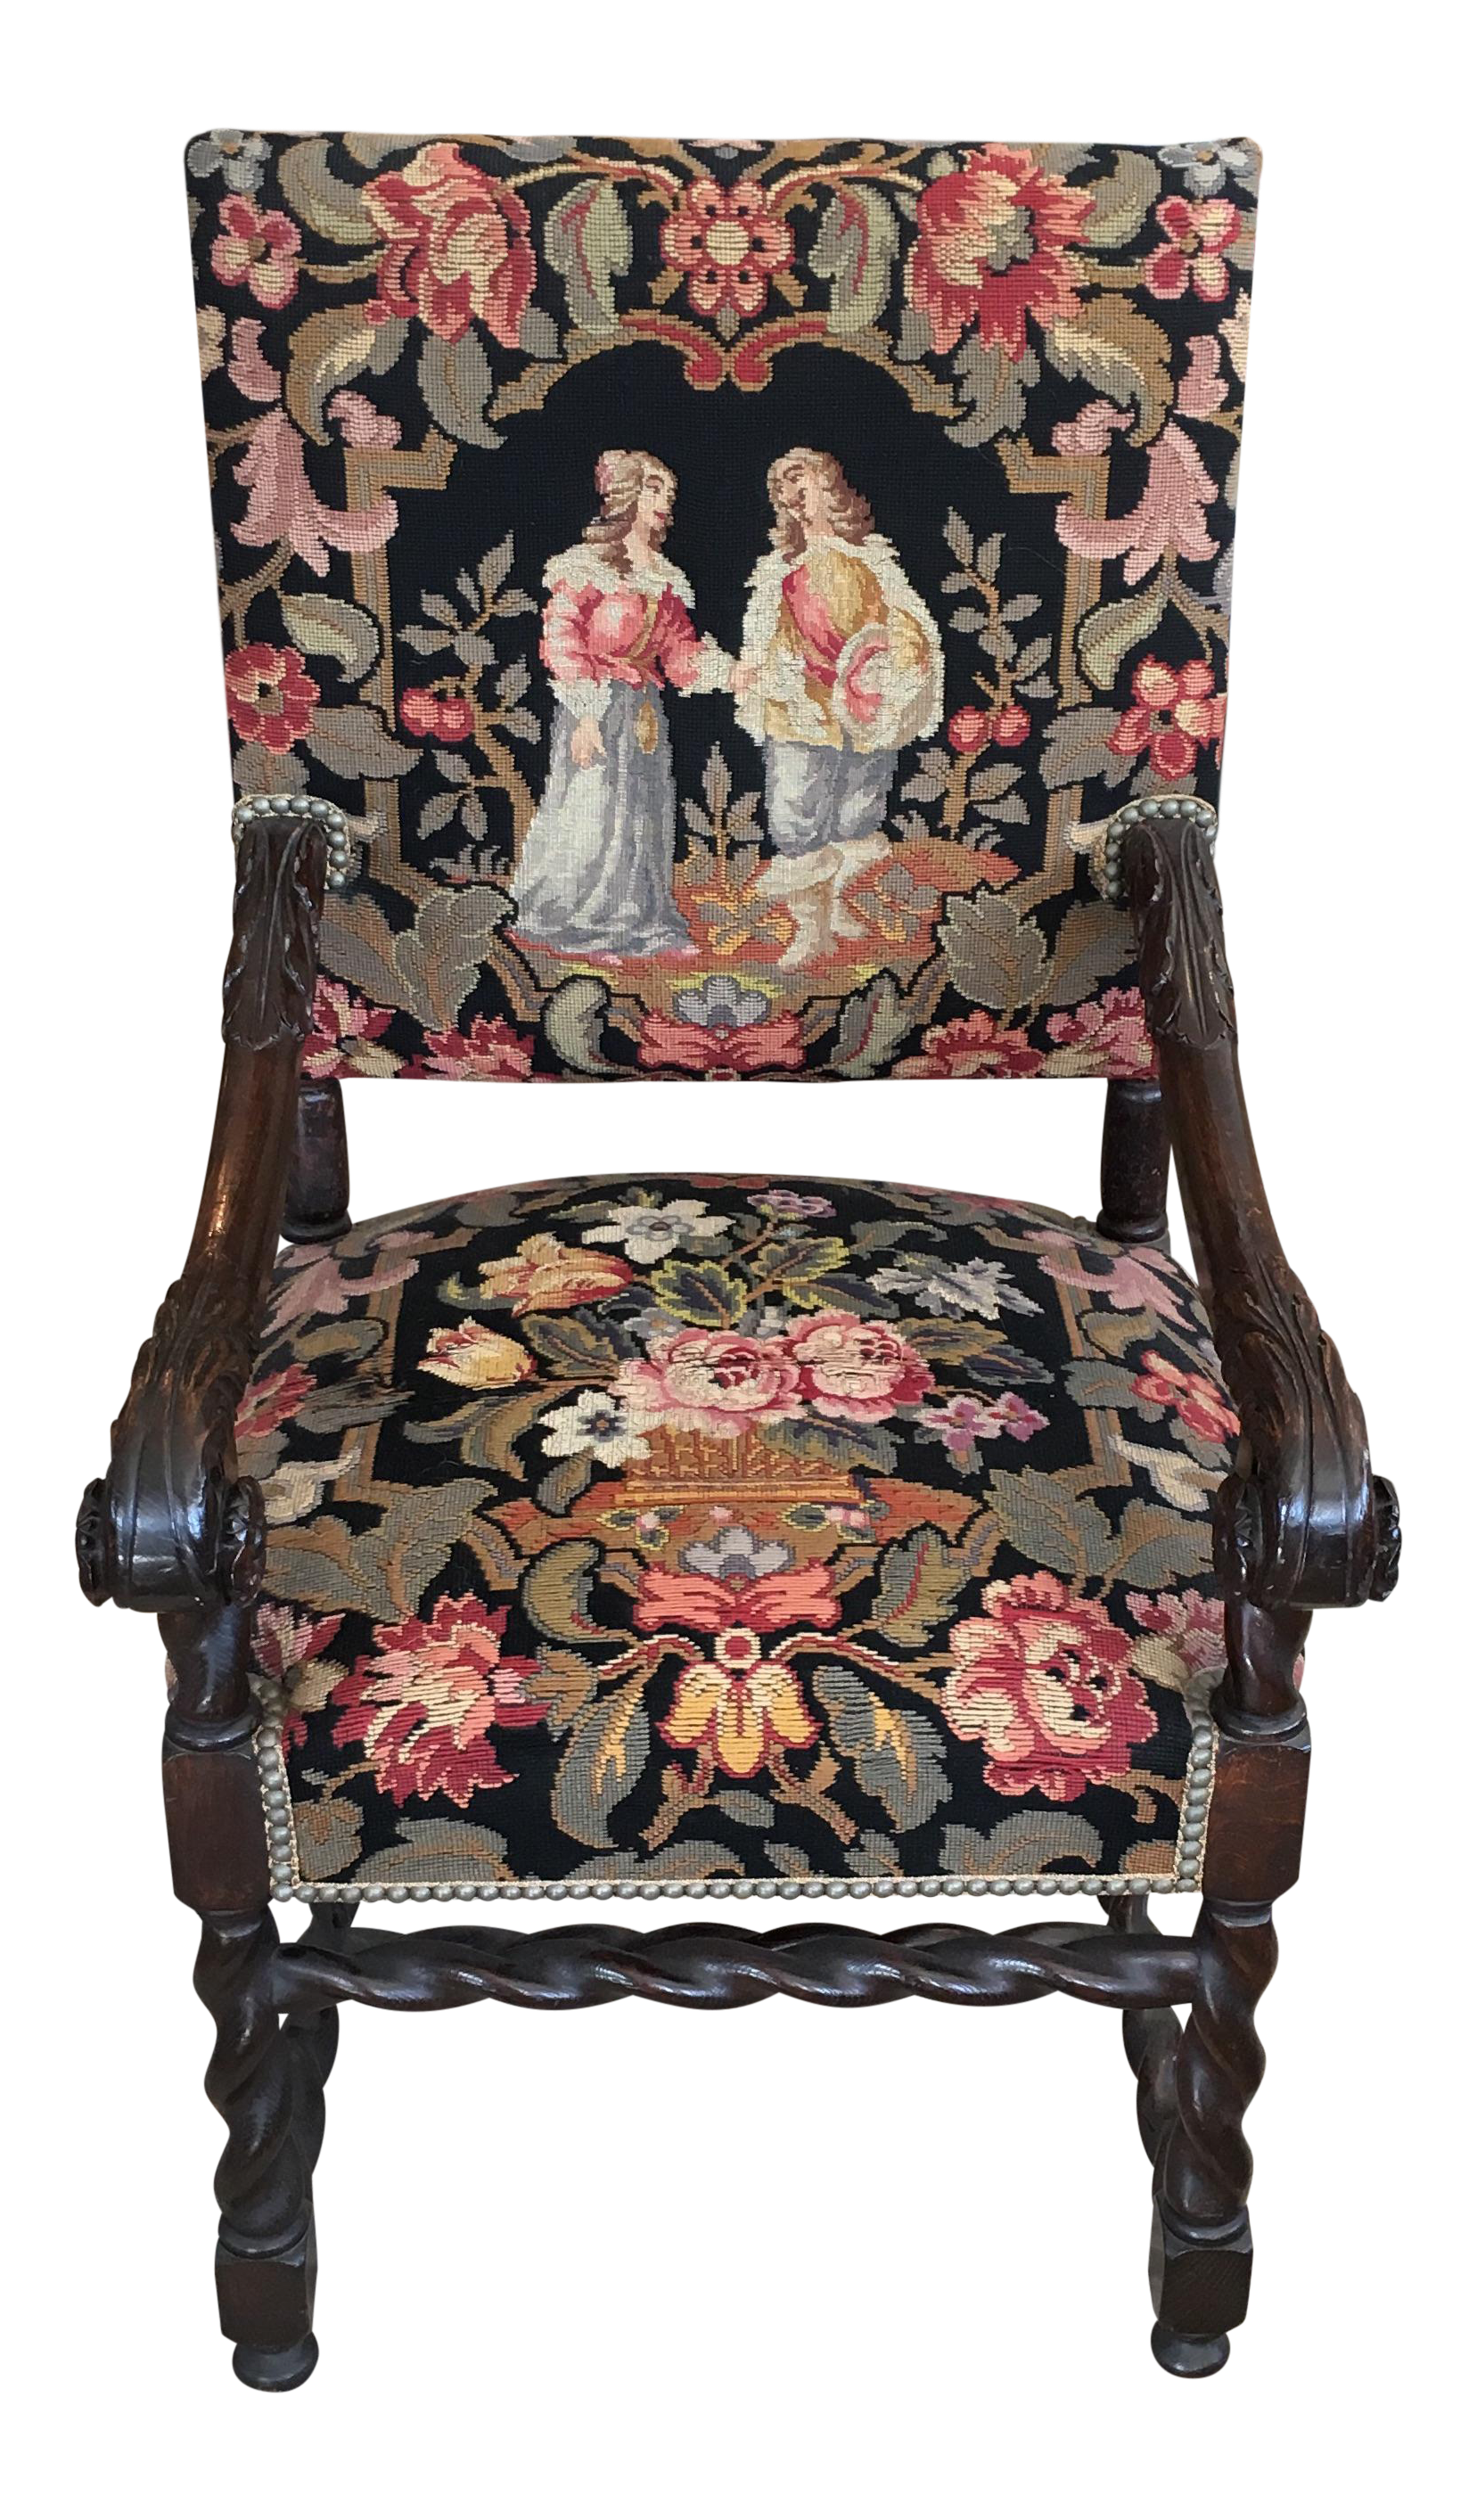 Antique 18th C. French Tapestry Throne Chair